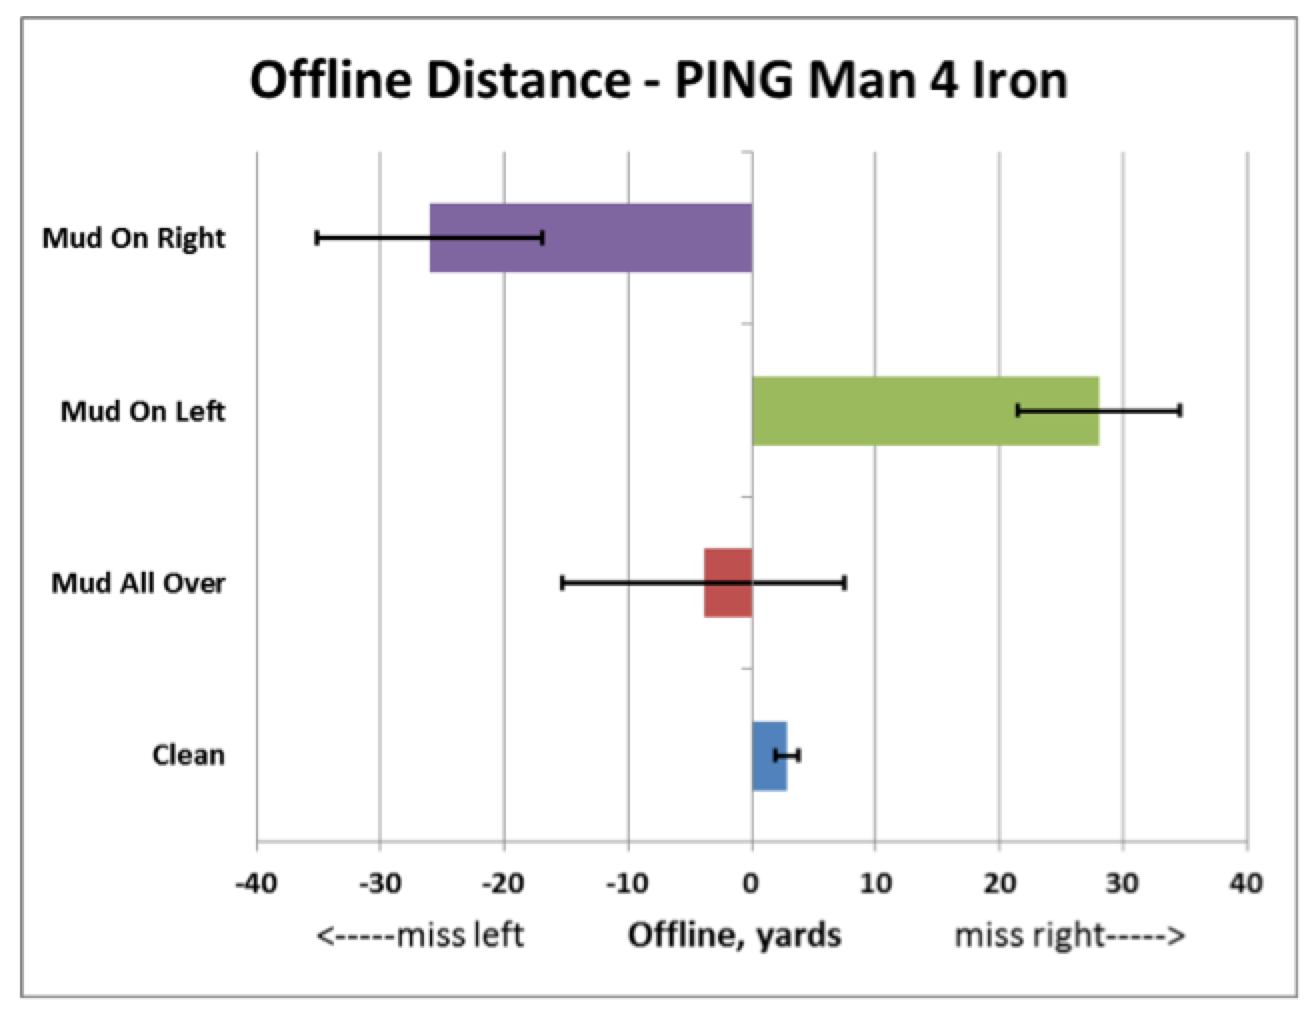 Offline_distance_Ping_man_4_iron